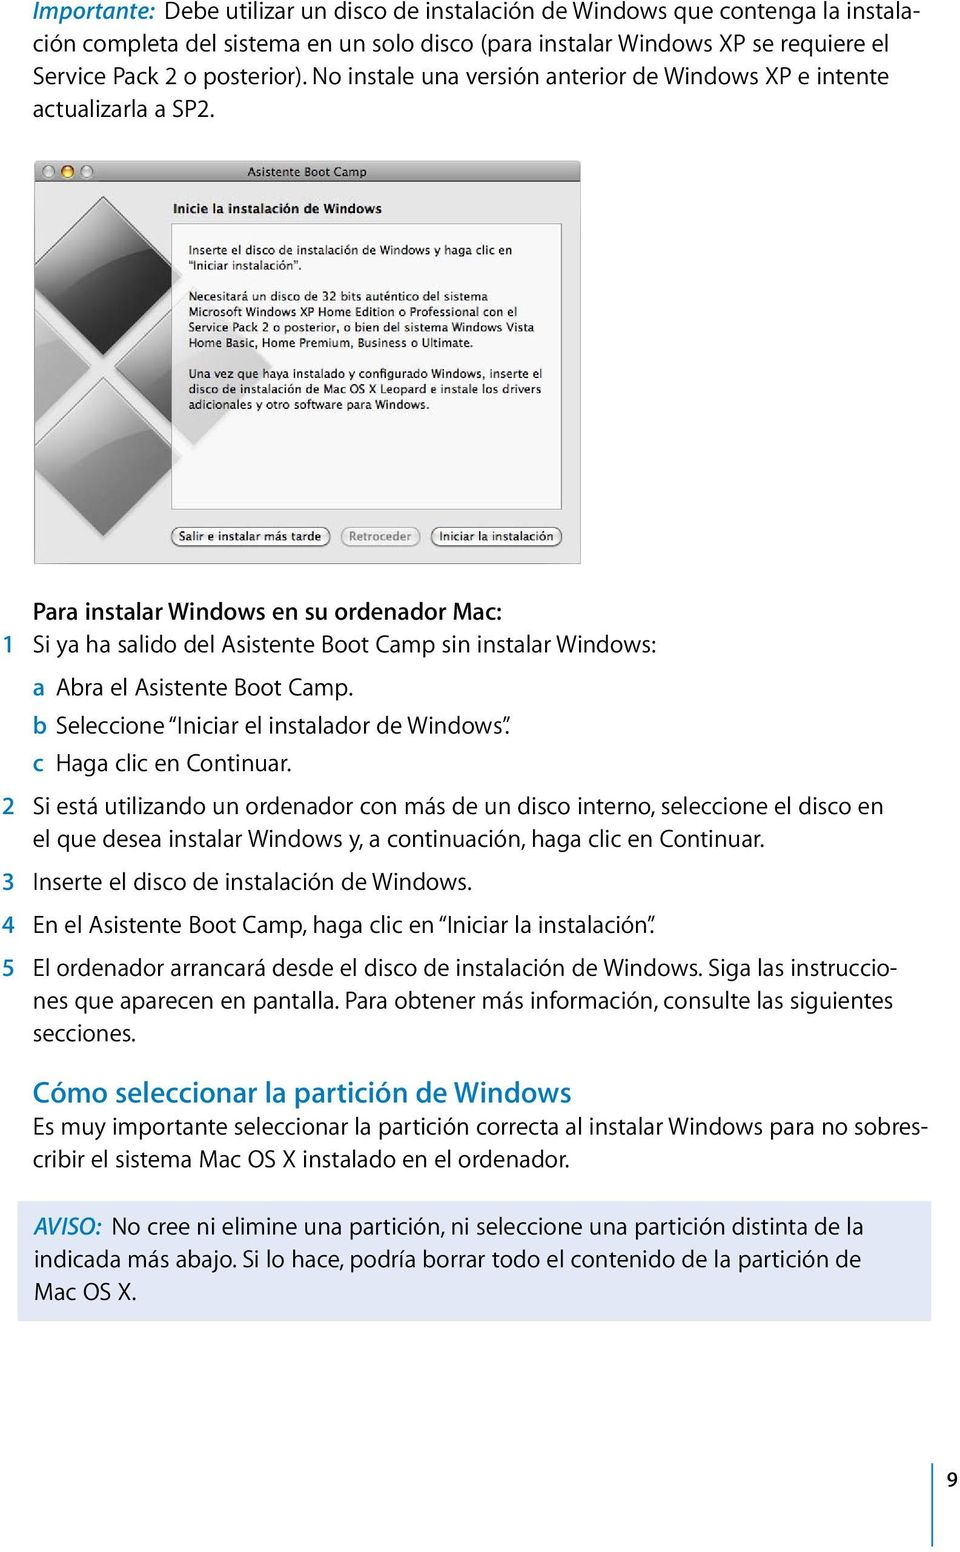 Para instalar Windows en su ordenador Mac: 1 Si ya ha salido del Asistente Boot Camp sin instalar Windows: a Abra el Asistente Boot Camp. b Seleccione Iniciar el instalador de Windows.